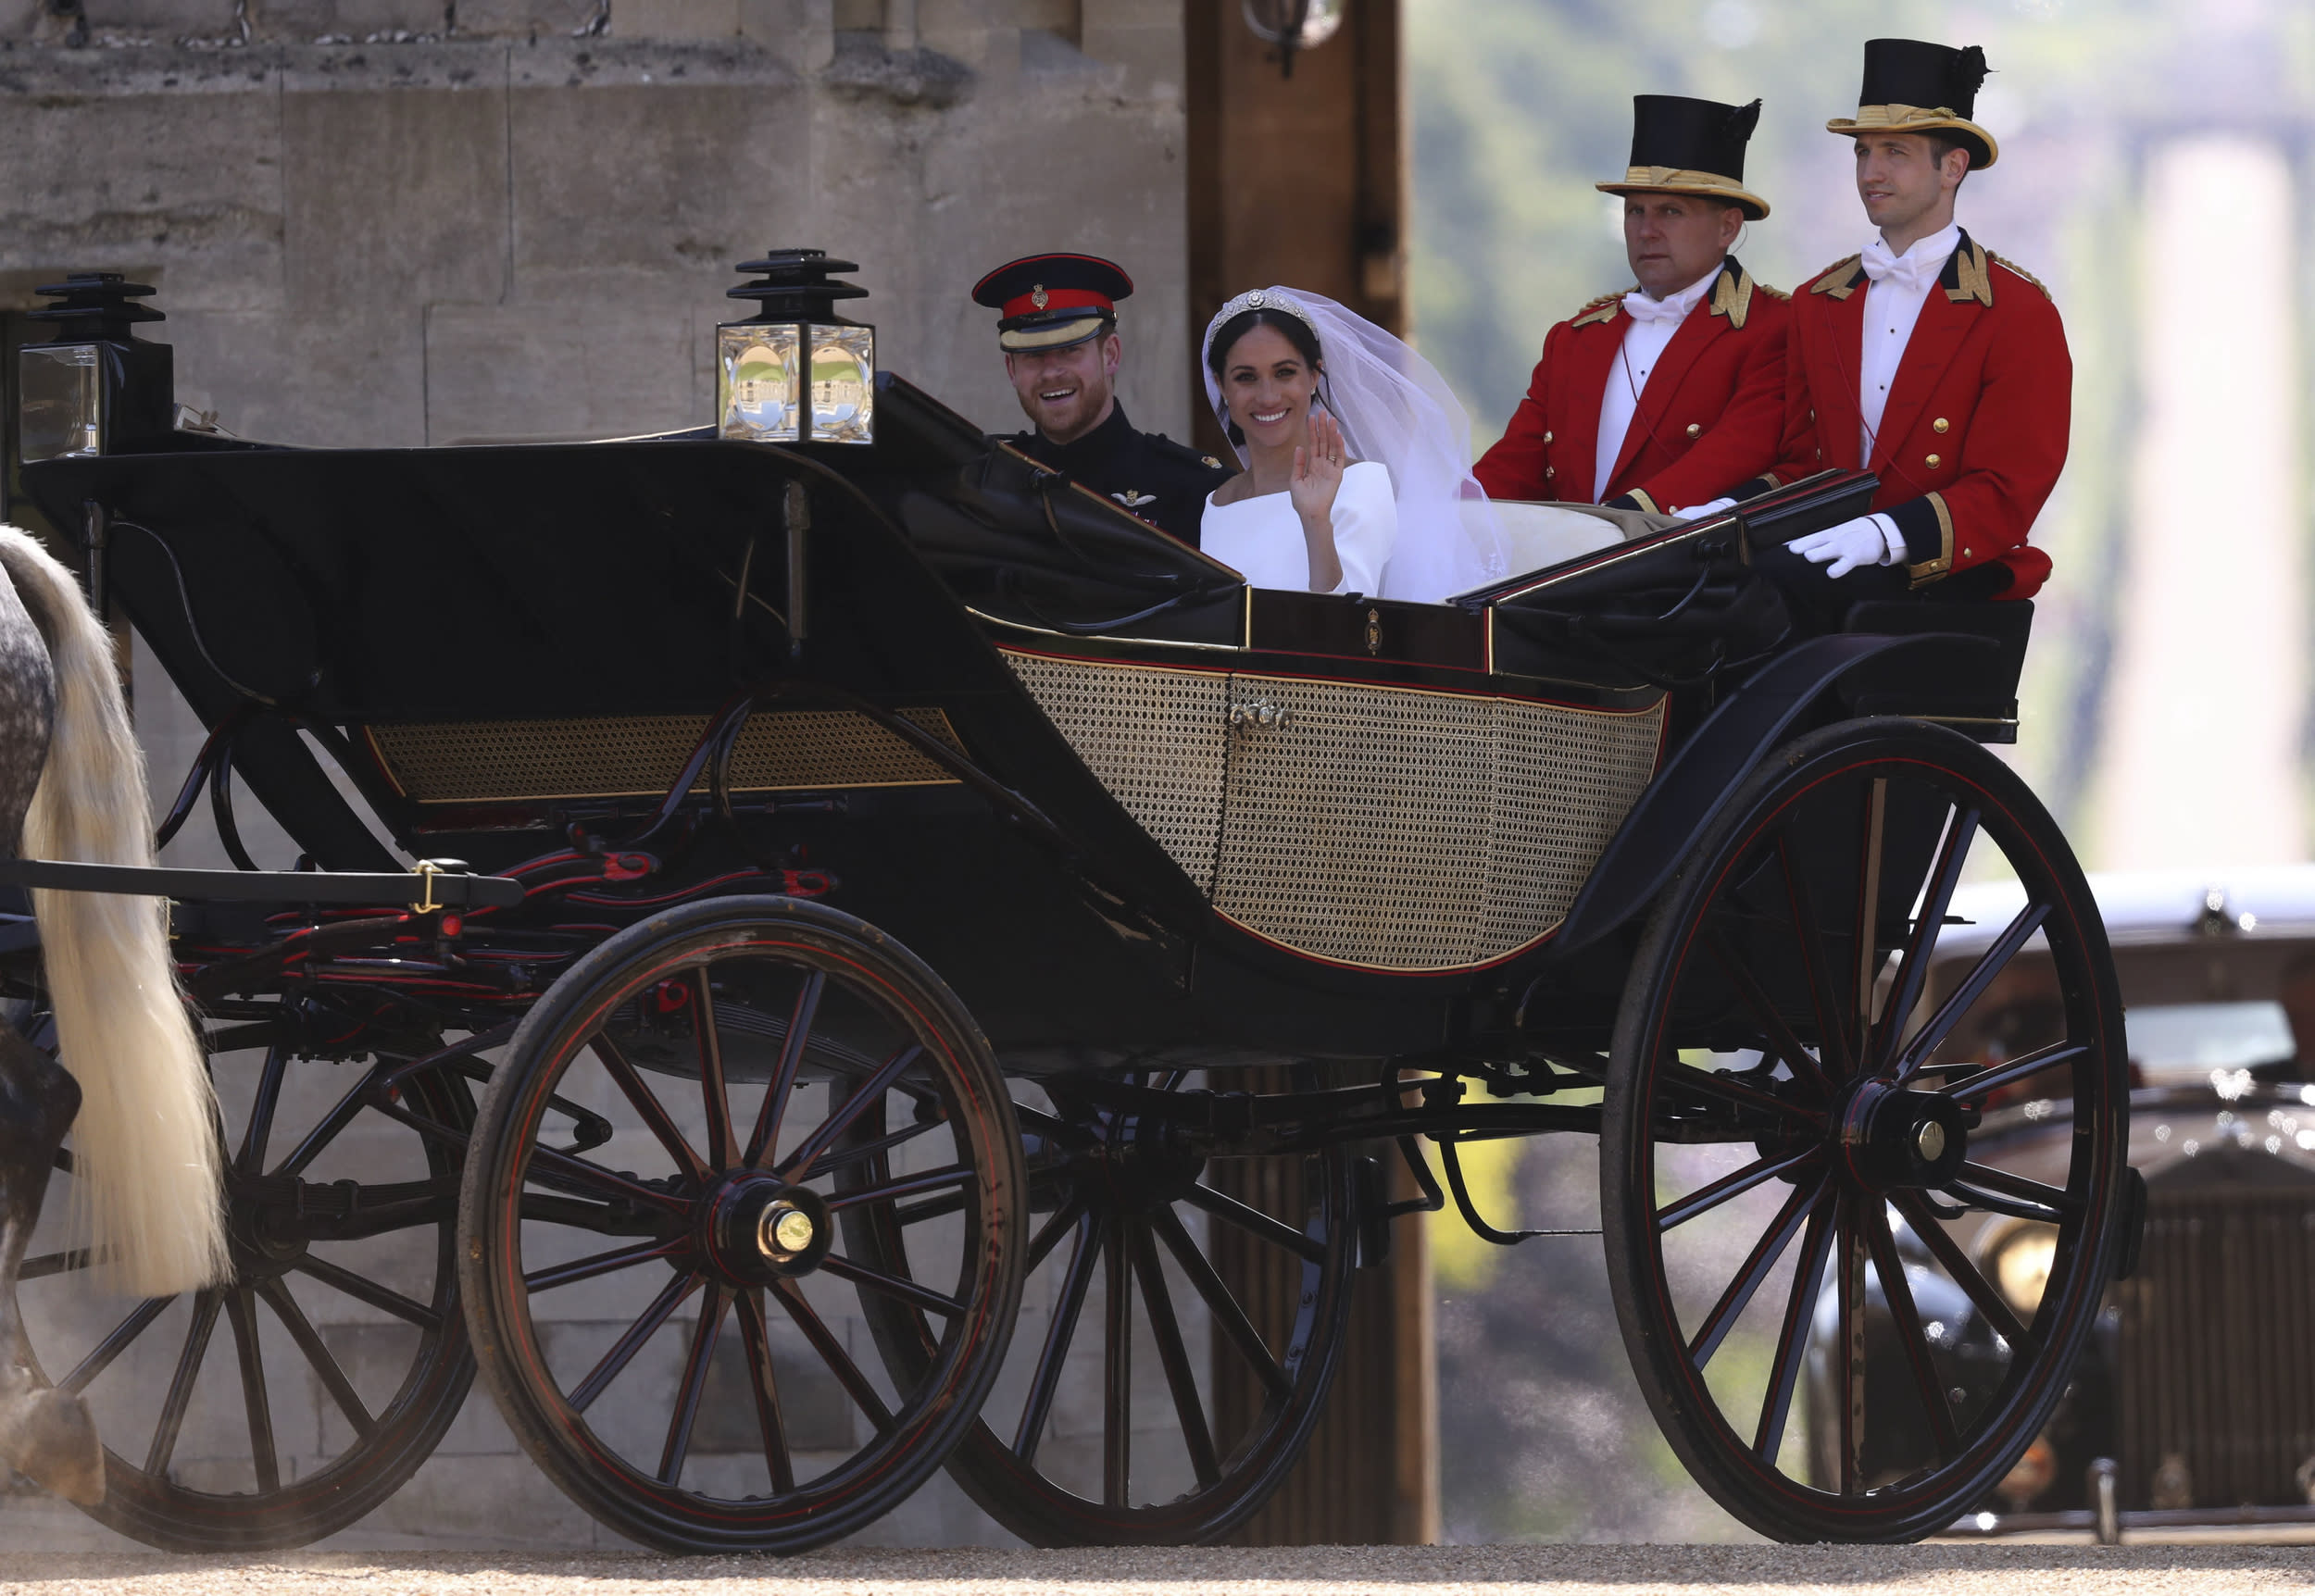 <p>Britain's Prince Harry, Duke of Sussex and his wife Meghan, Duchess of Sussex arrive back at Windsor Castle in the Ascot Landau Carriage after their wedding ceremony and after their procession in Windsor, on May 19, 2018.</p>  <p>(Photo by Steve Parsons / POOL / AFP)</p>